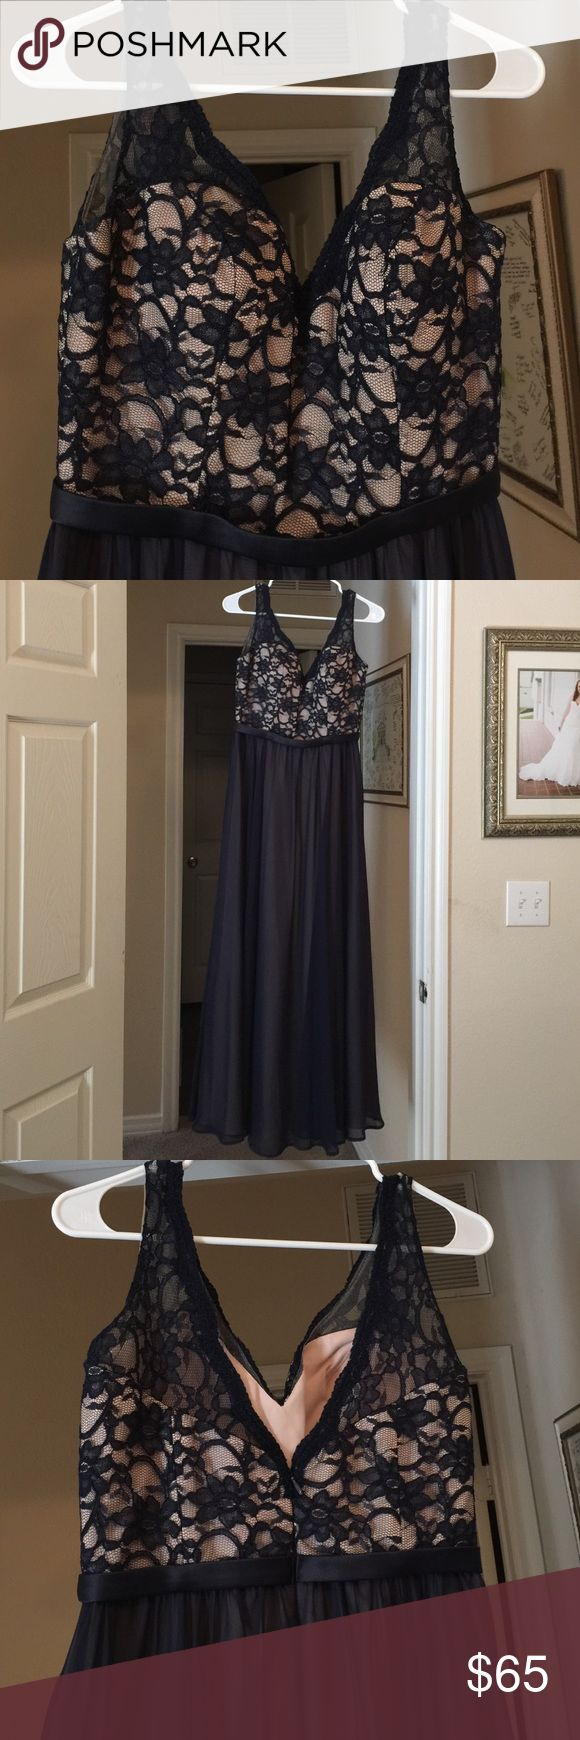 Formal dress Beautiful navy formal dress perfect for wedding or prom. The bodice is navy lace with a nude lining. Mori Lee Dresses Prom